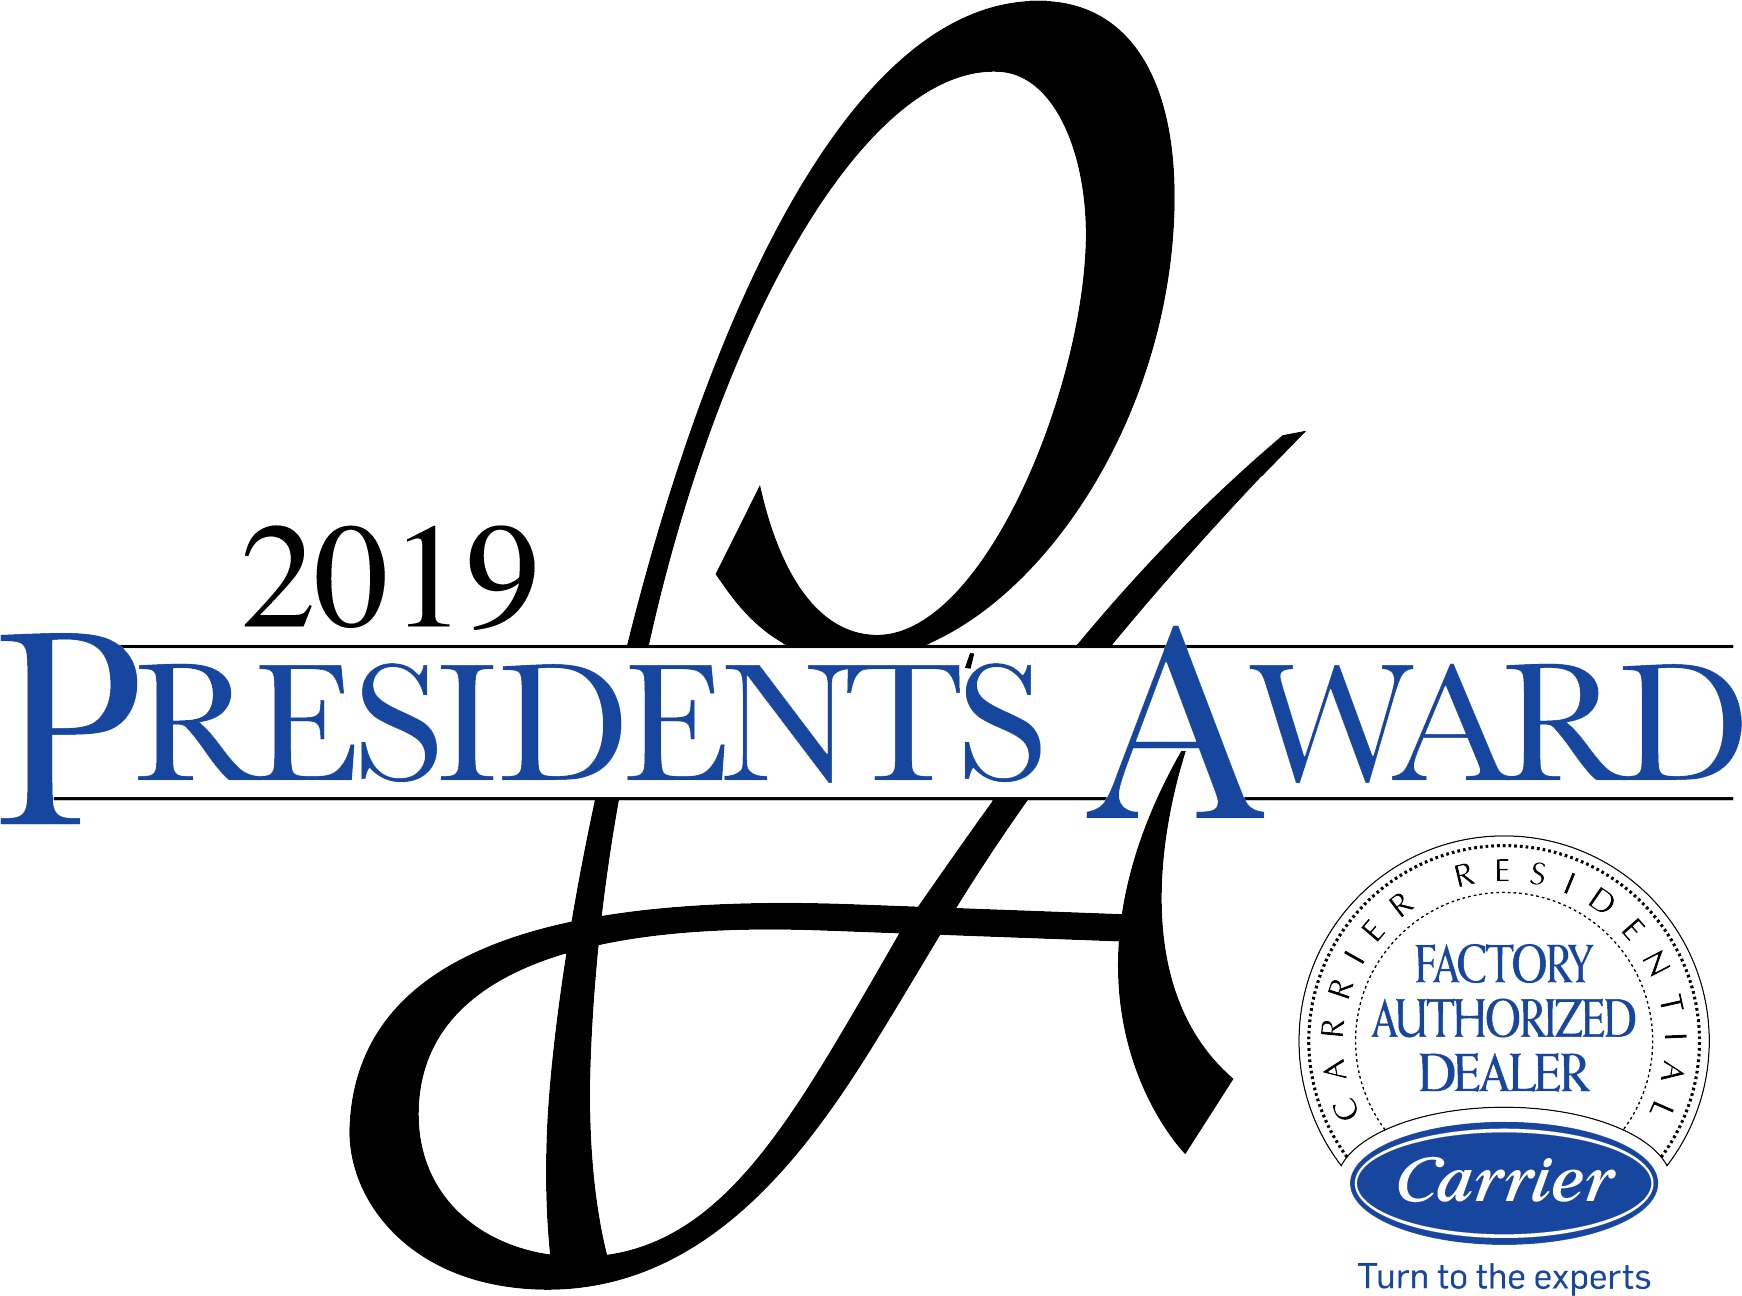 2019 President's Award from Carrier